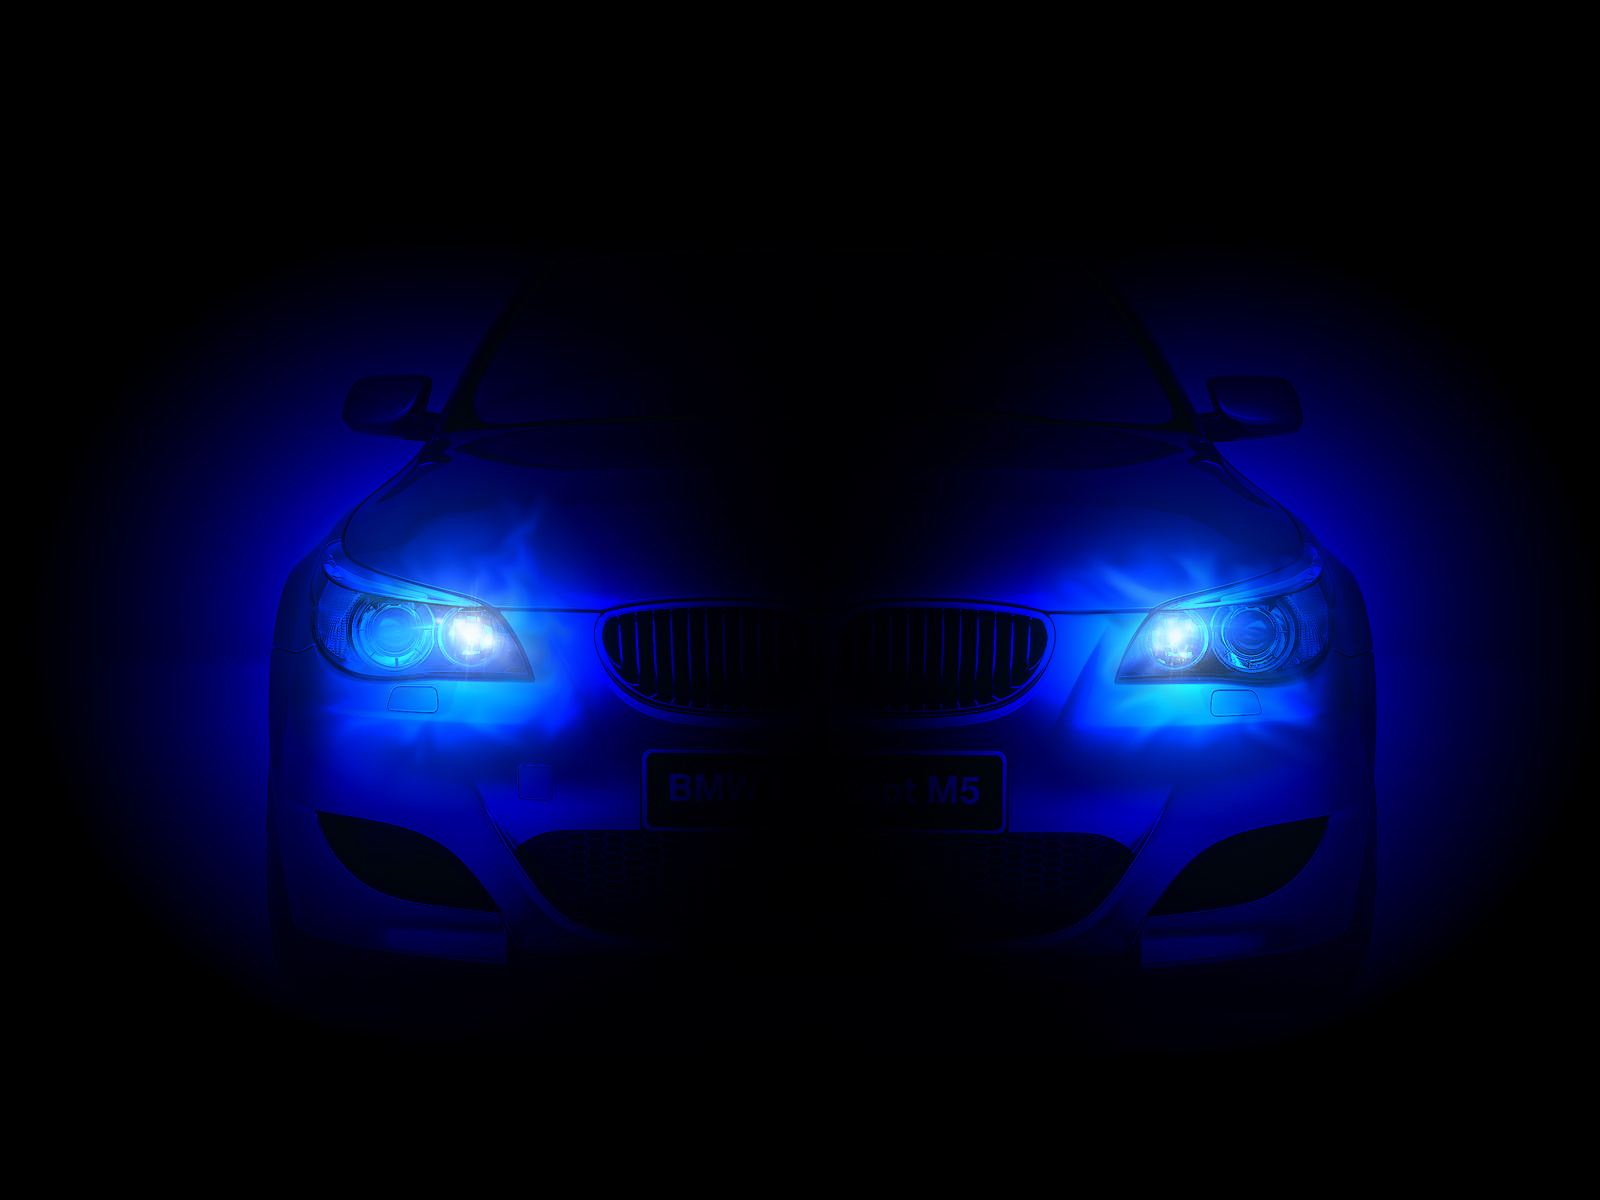 You are viewing the Bmw wallpaper named Bmw 117.